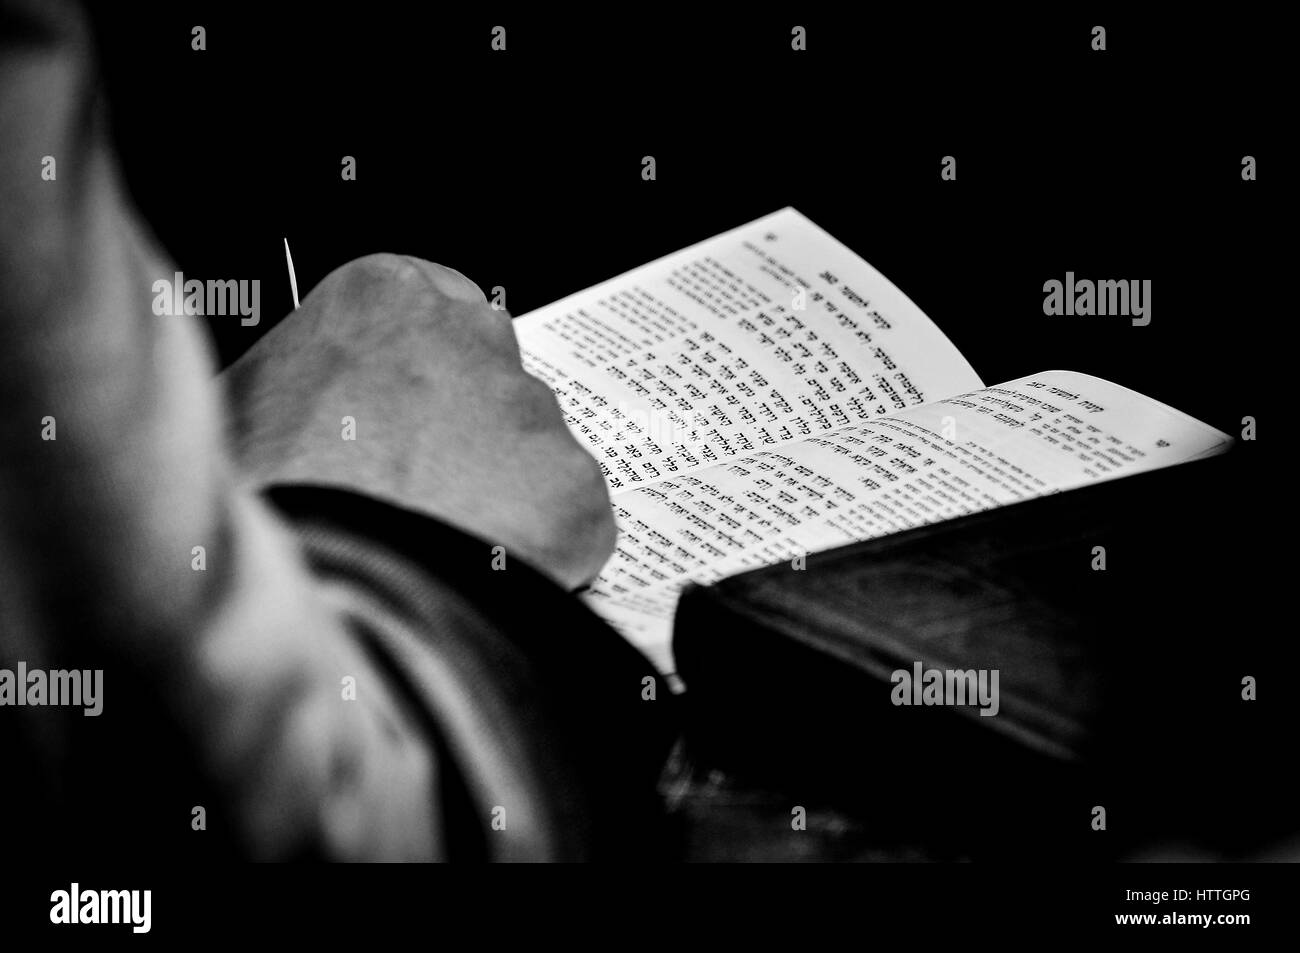 An Ultra othordox Jew reading the Hebrew scriptures at the western wall in Jerusalem. - Stock Image